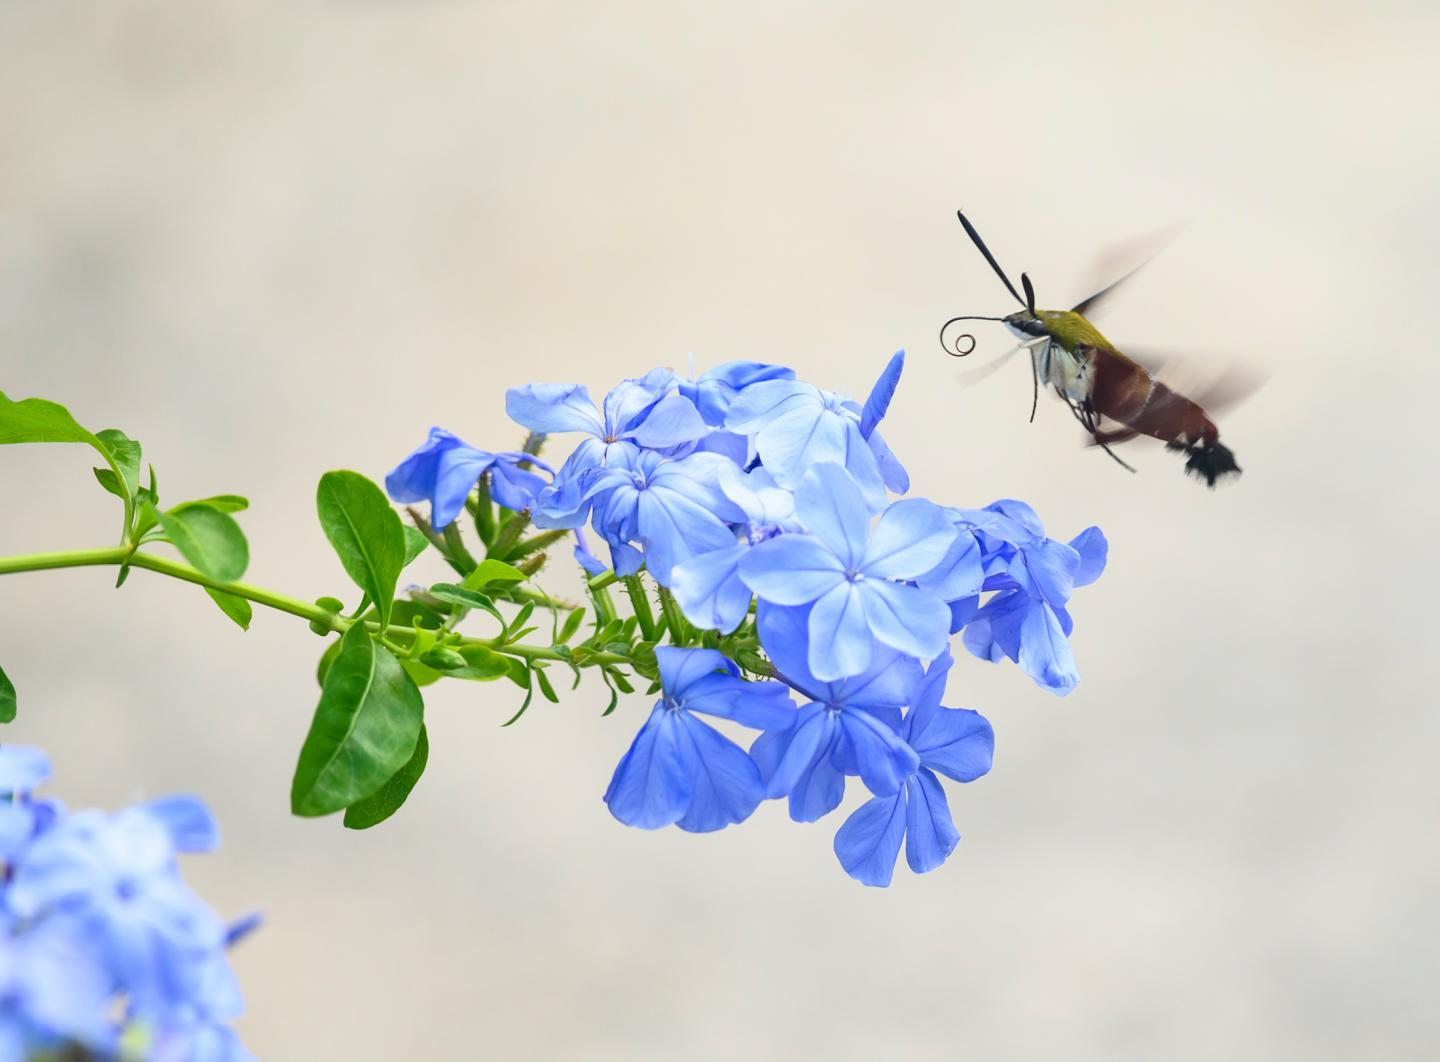 Scientists Outline Simple Ways of Protecting Insects